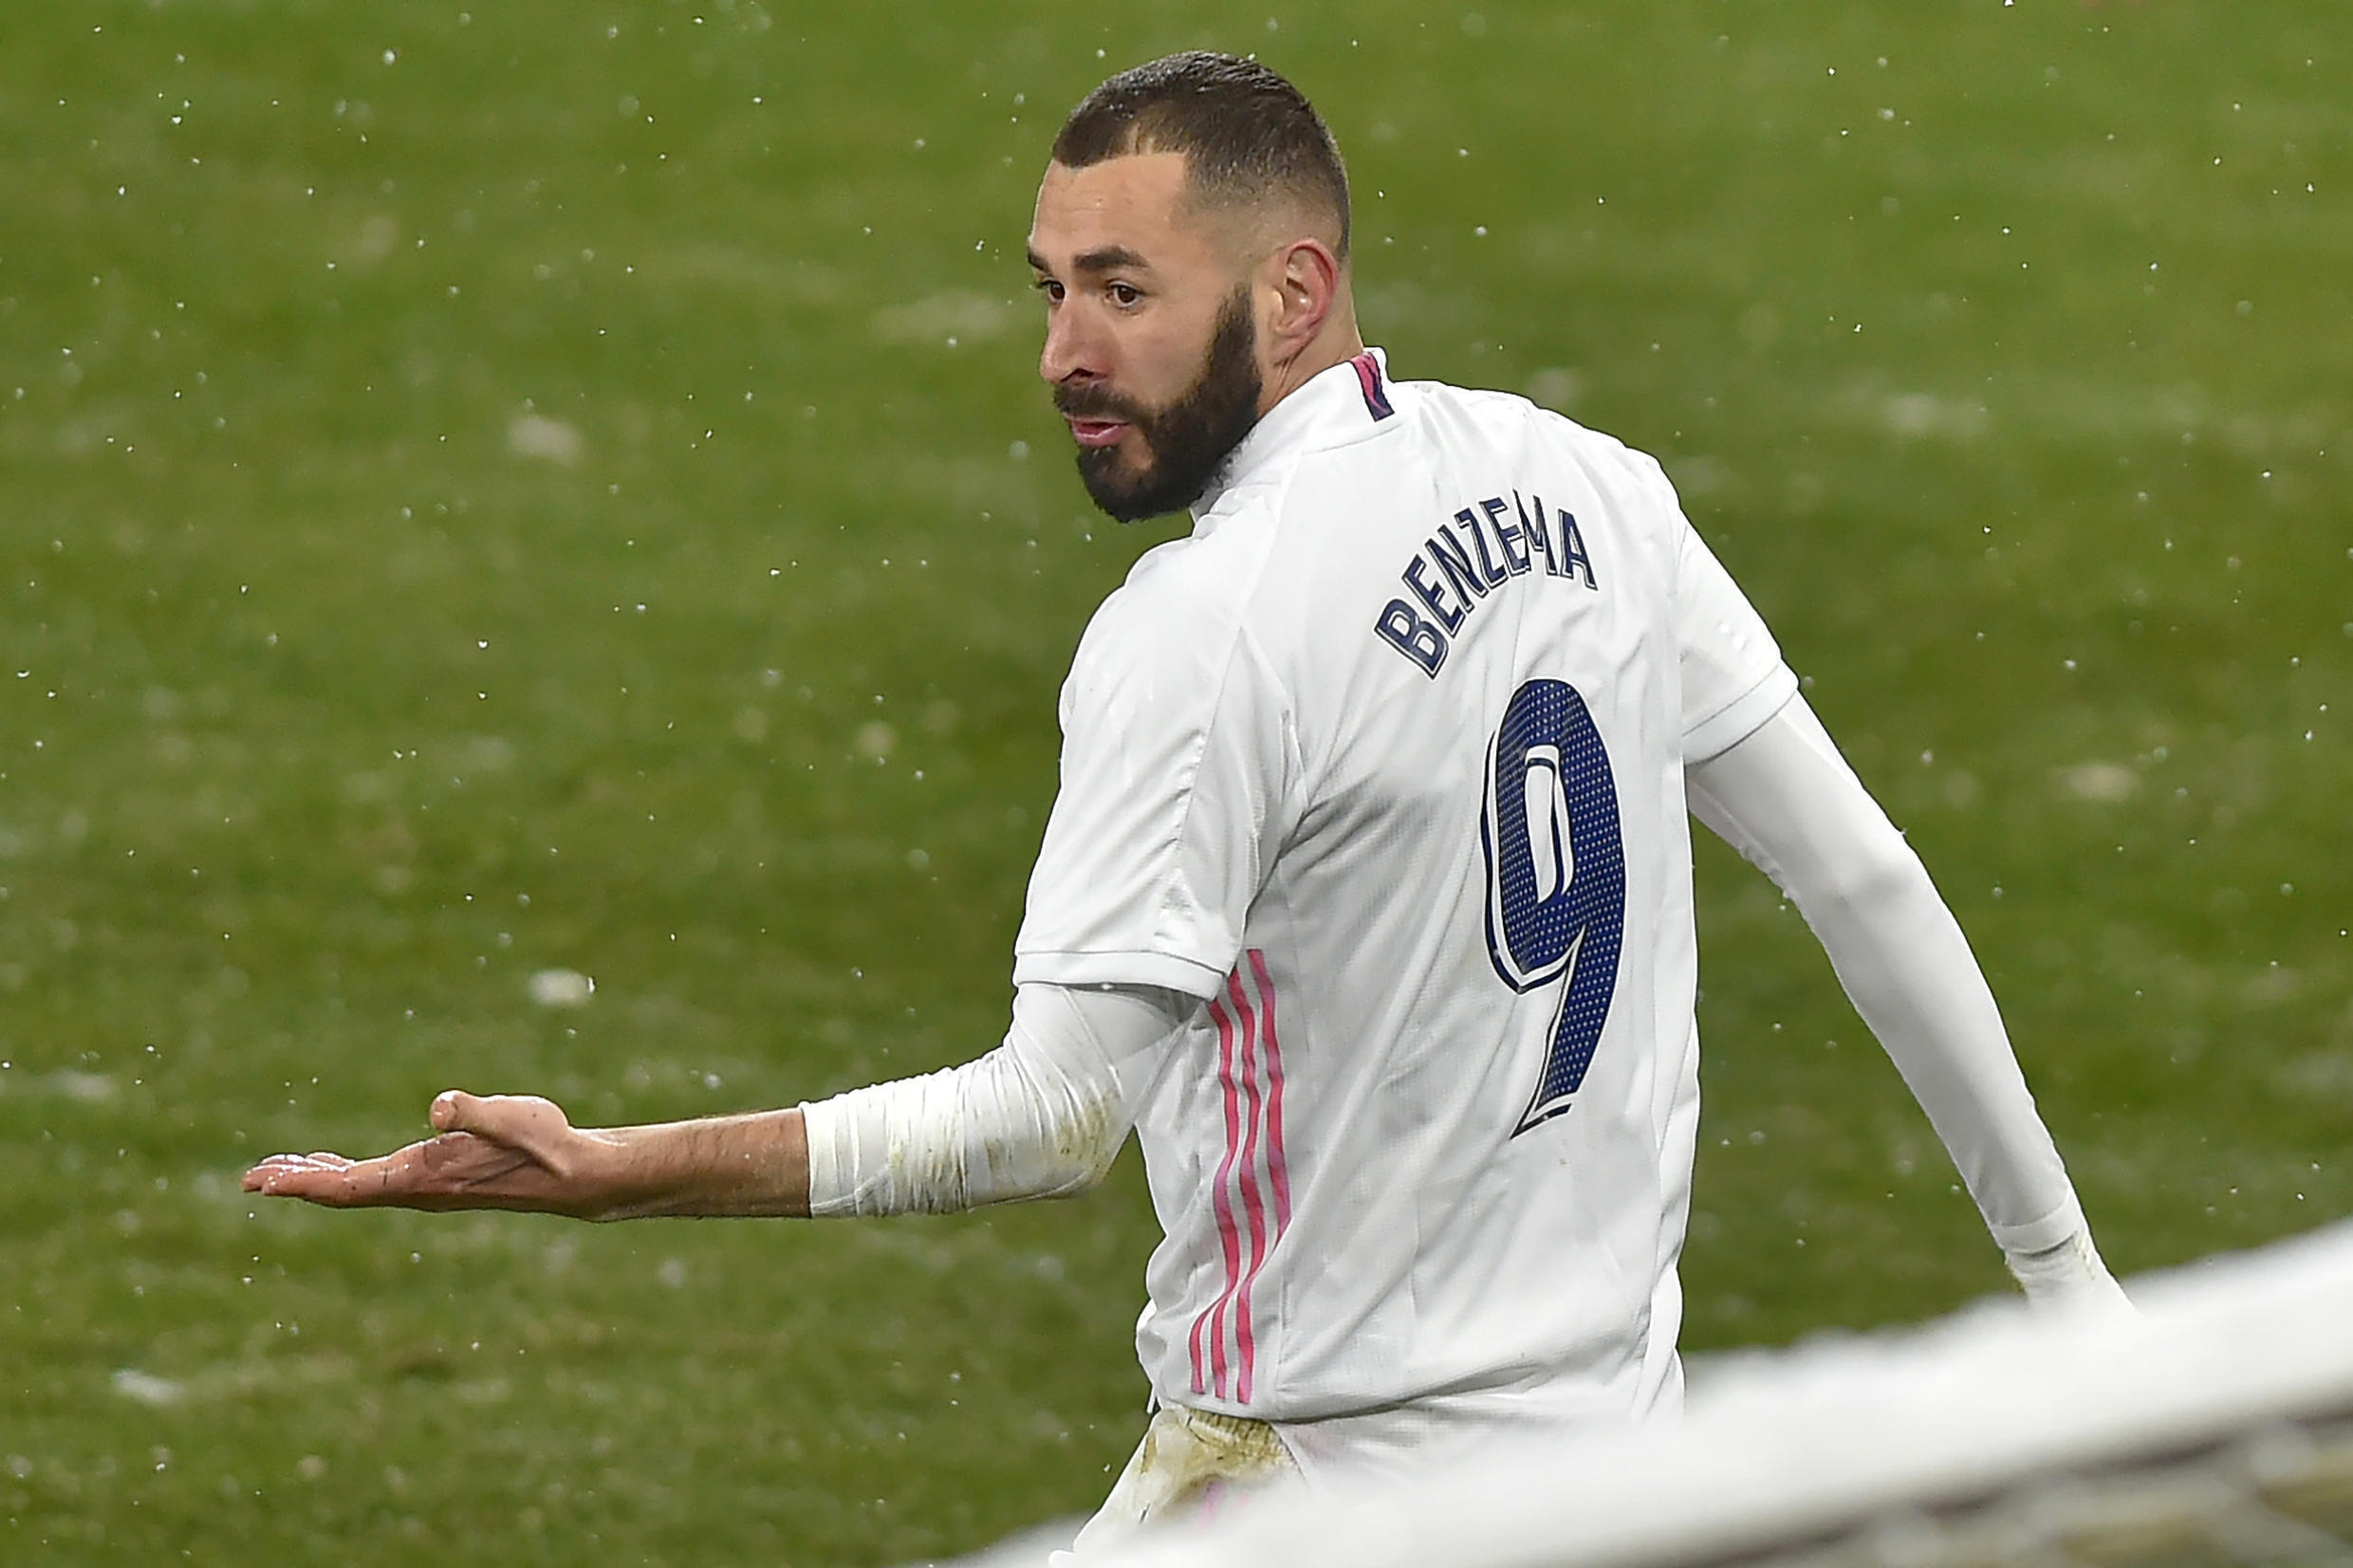 Karim Benzema and Real Madrid play Athletic Bilbao in the Spanish Super Cup semi-finals on Thursday